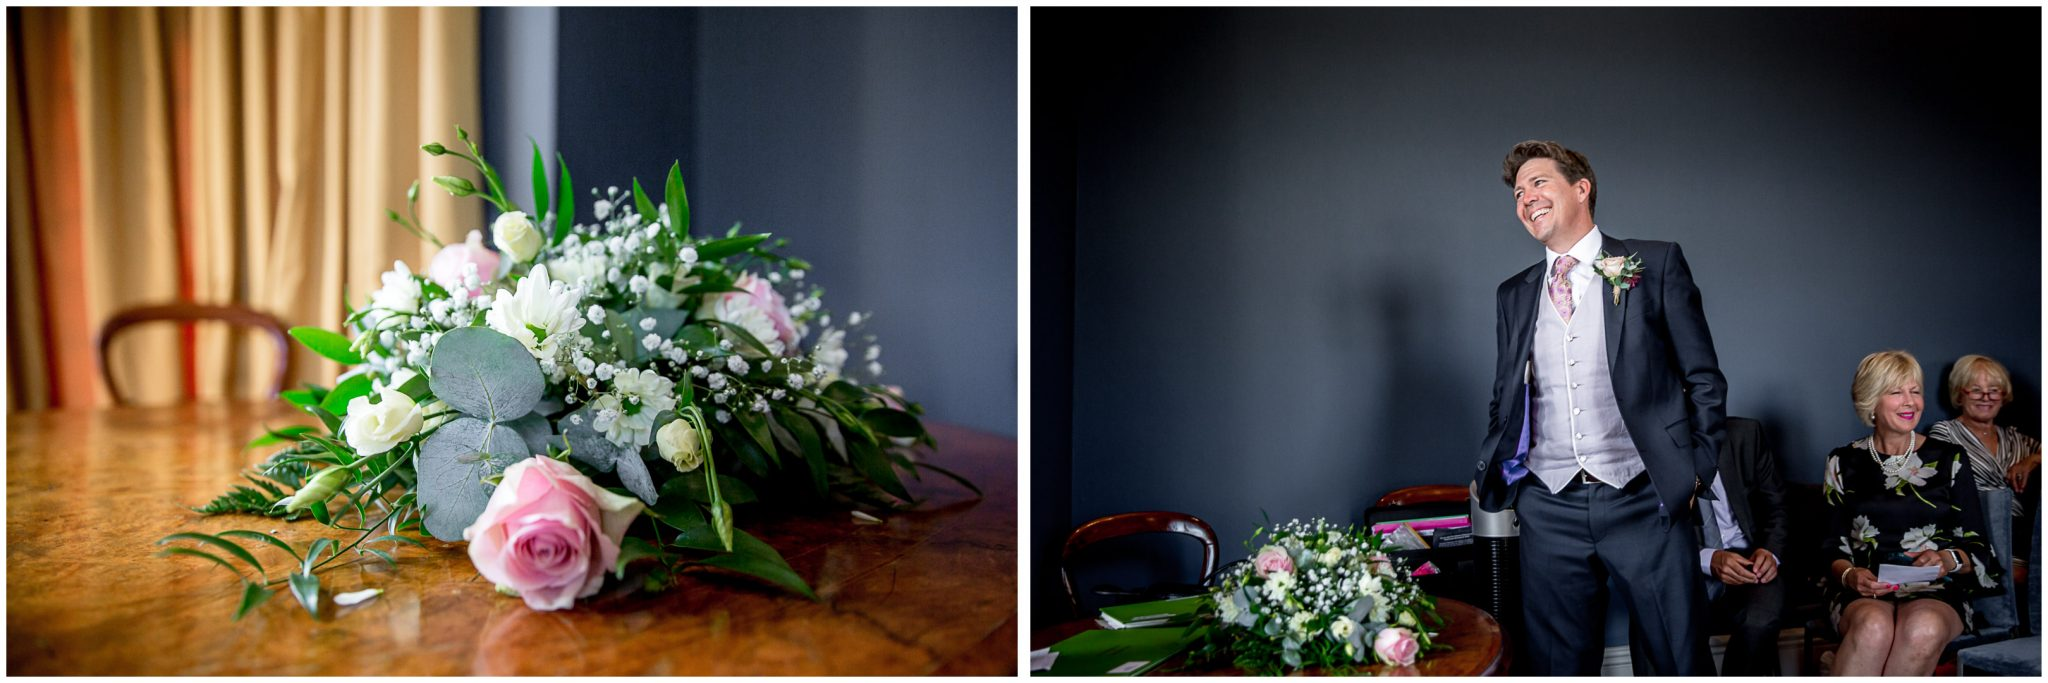 Colour photos of groom and flowers in Castle Room Winchester before cermeony